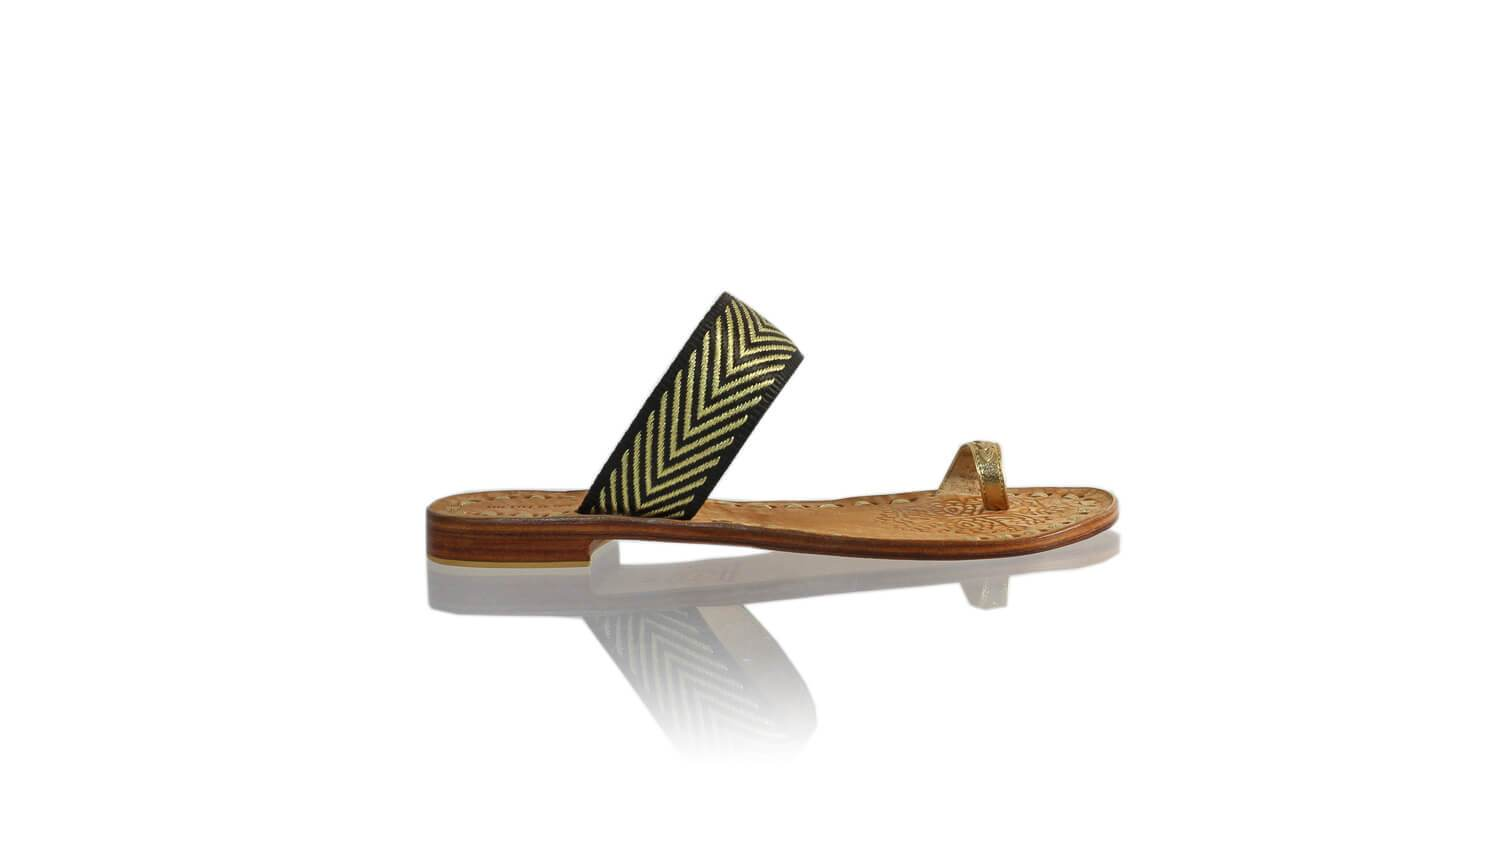 Leather-shoes-Arini 20mm Flat - Gold & Black Gold Ribbon-sandals flat-NILUH DJELANTIK-NILUH DJELANTIK